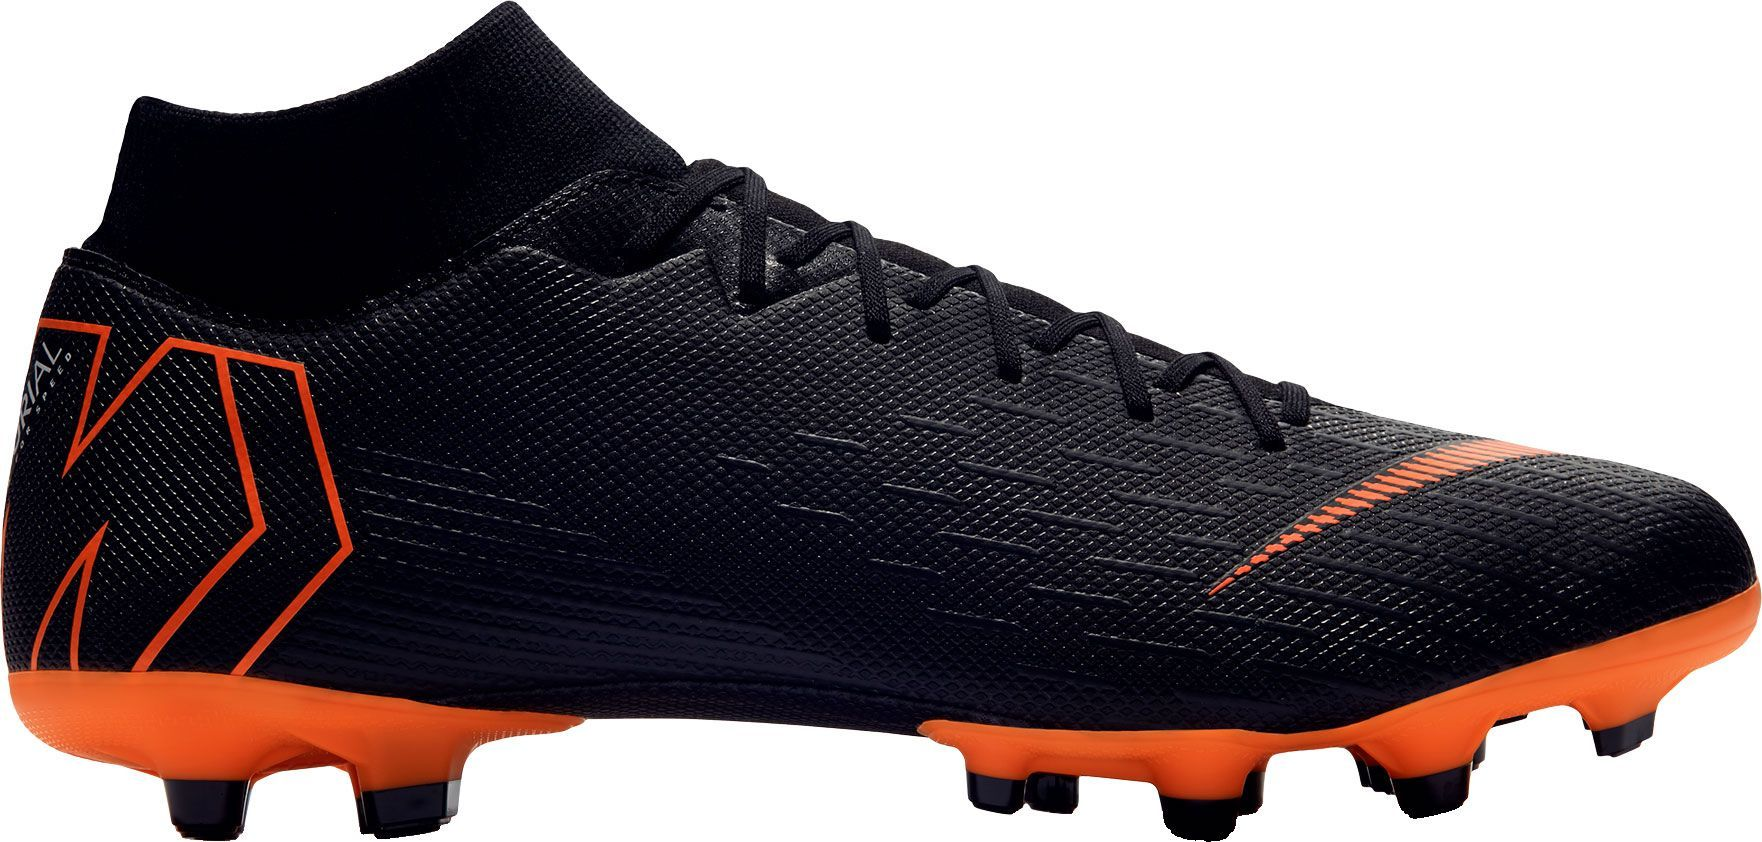 new products aca19 6d593 nike hypervenom sock boots size 6